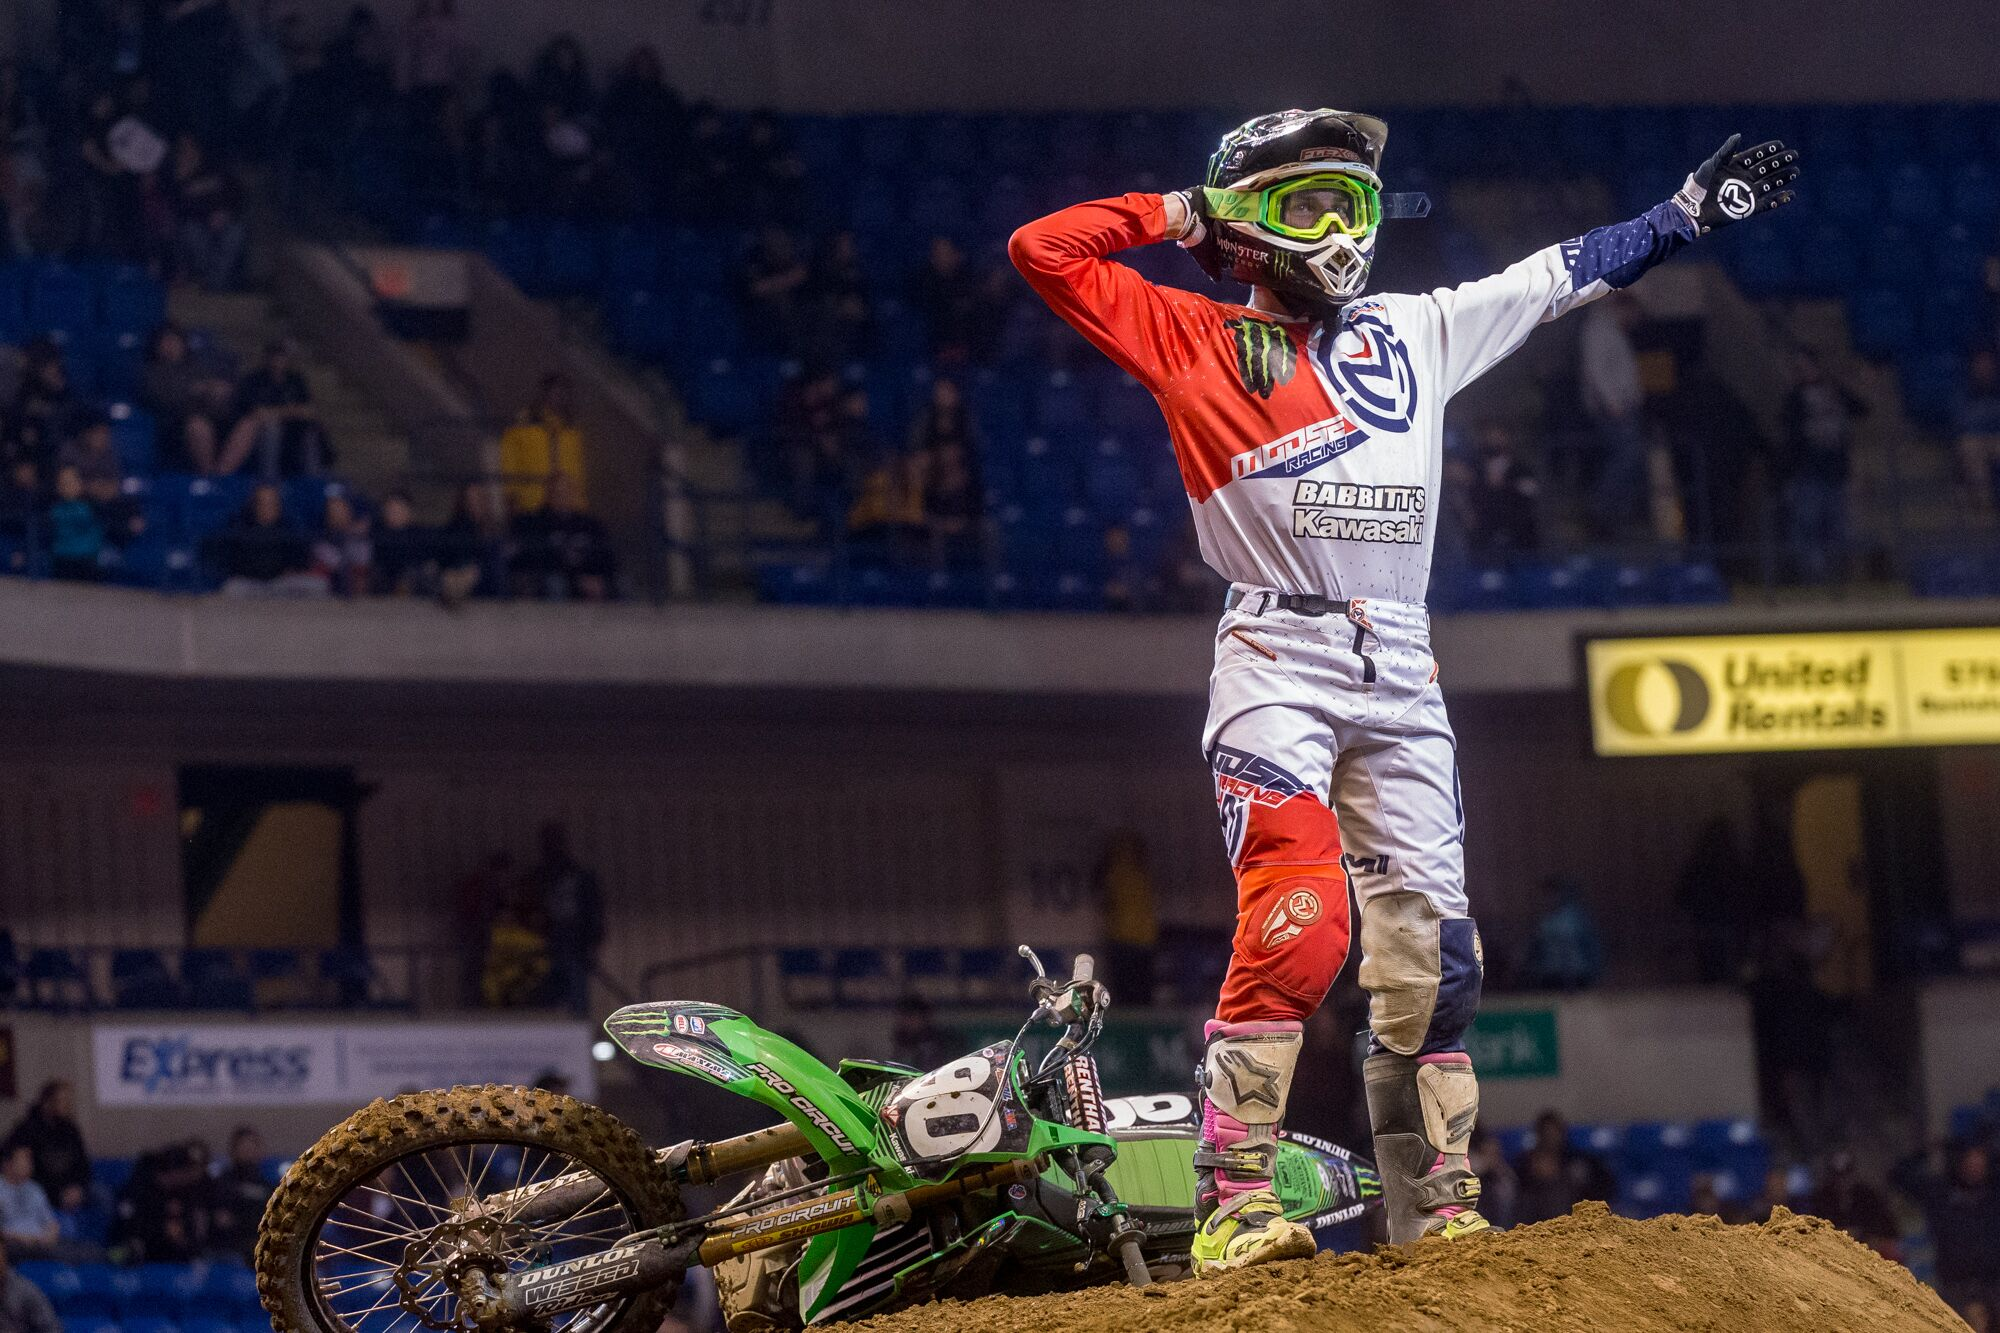 Hayes and Marchbanks Win at 2018 Wilkes-Barre AX